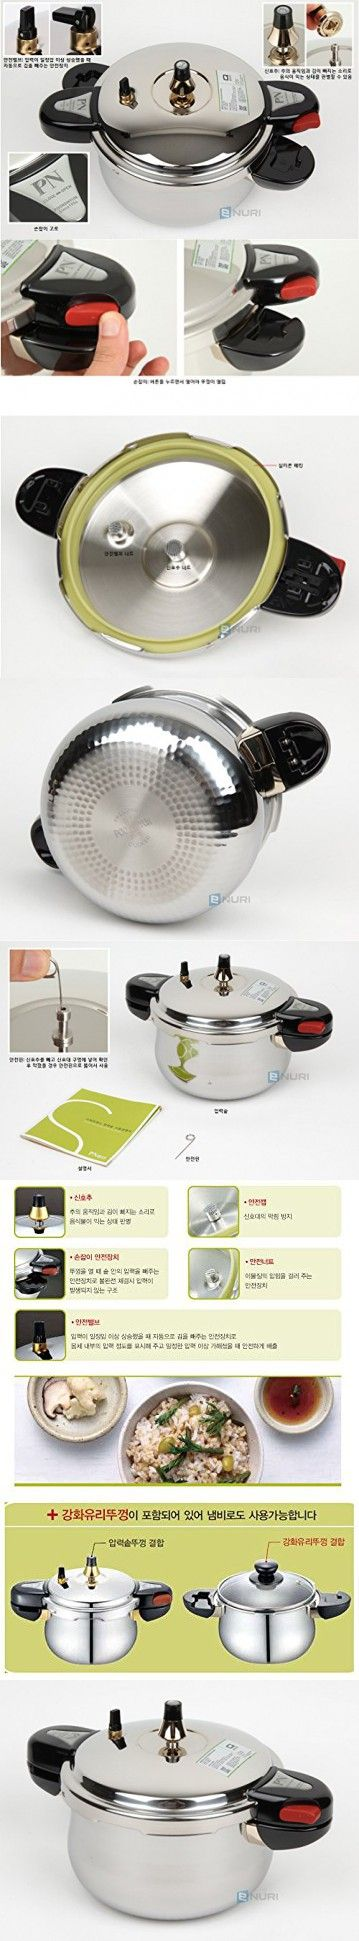 PN Hi Clad Pressure Rice Cooker IH Hive Series IH Induction Compatible (HCPC-22C (4.5L) for 8 person)